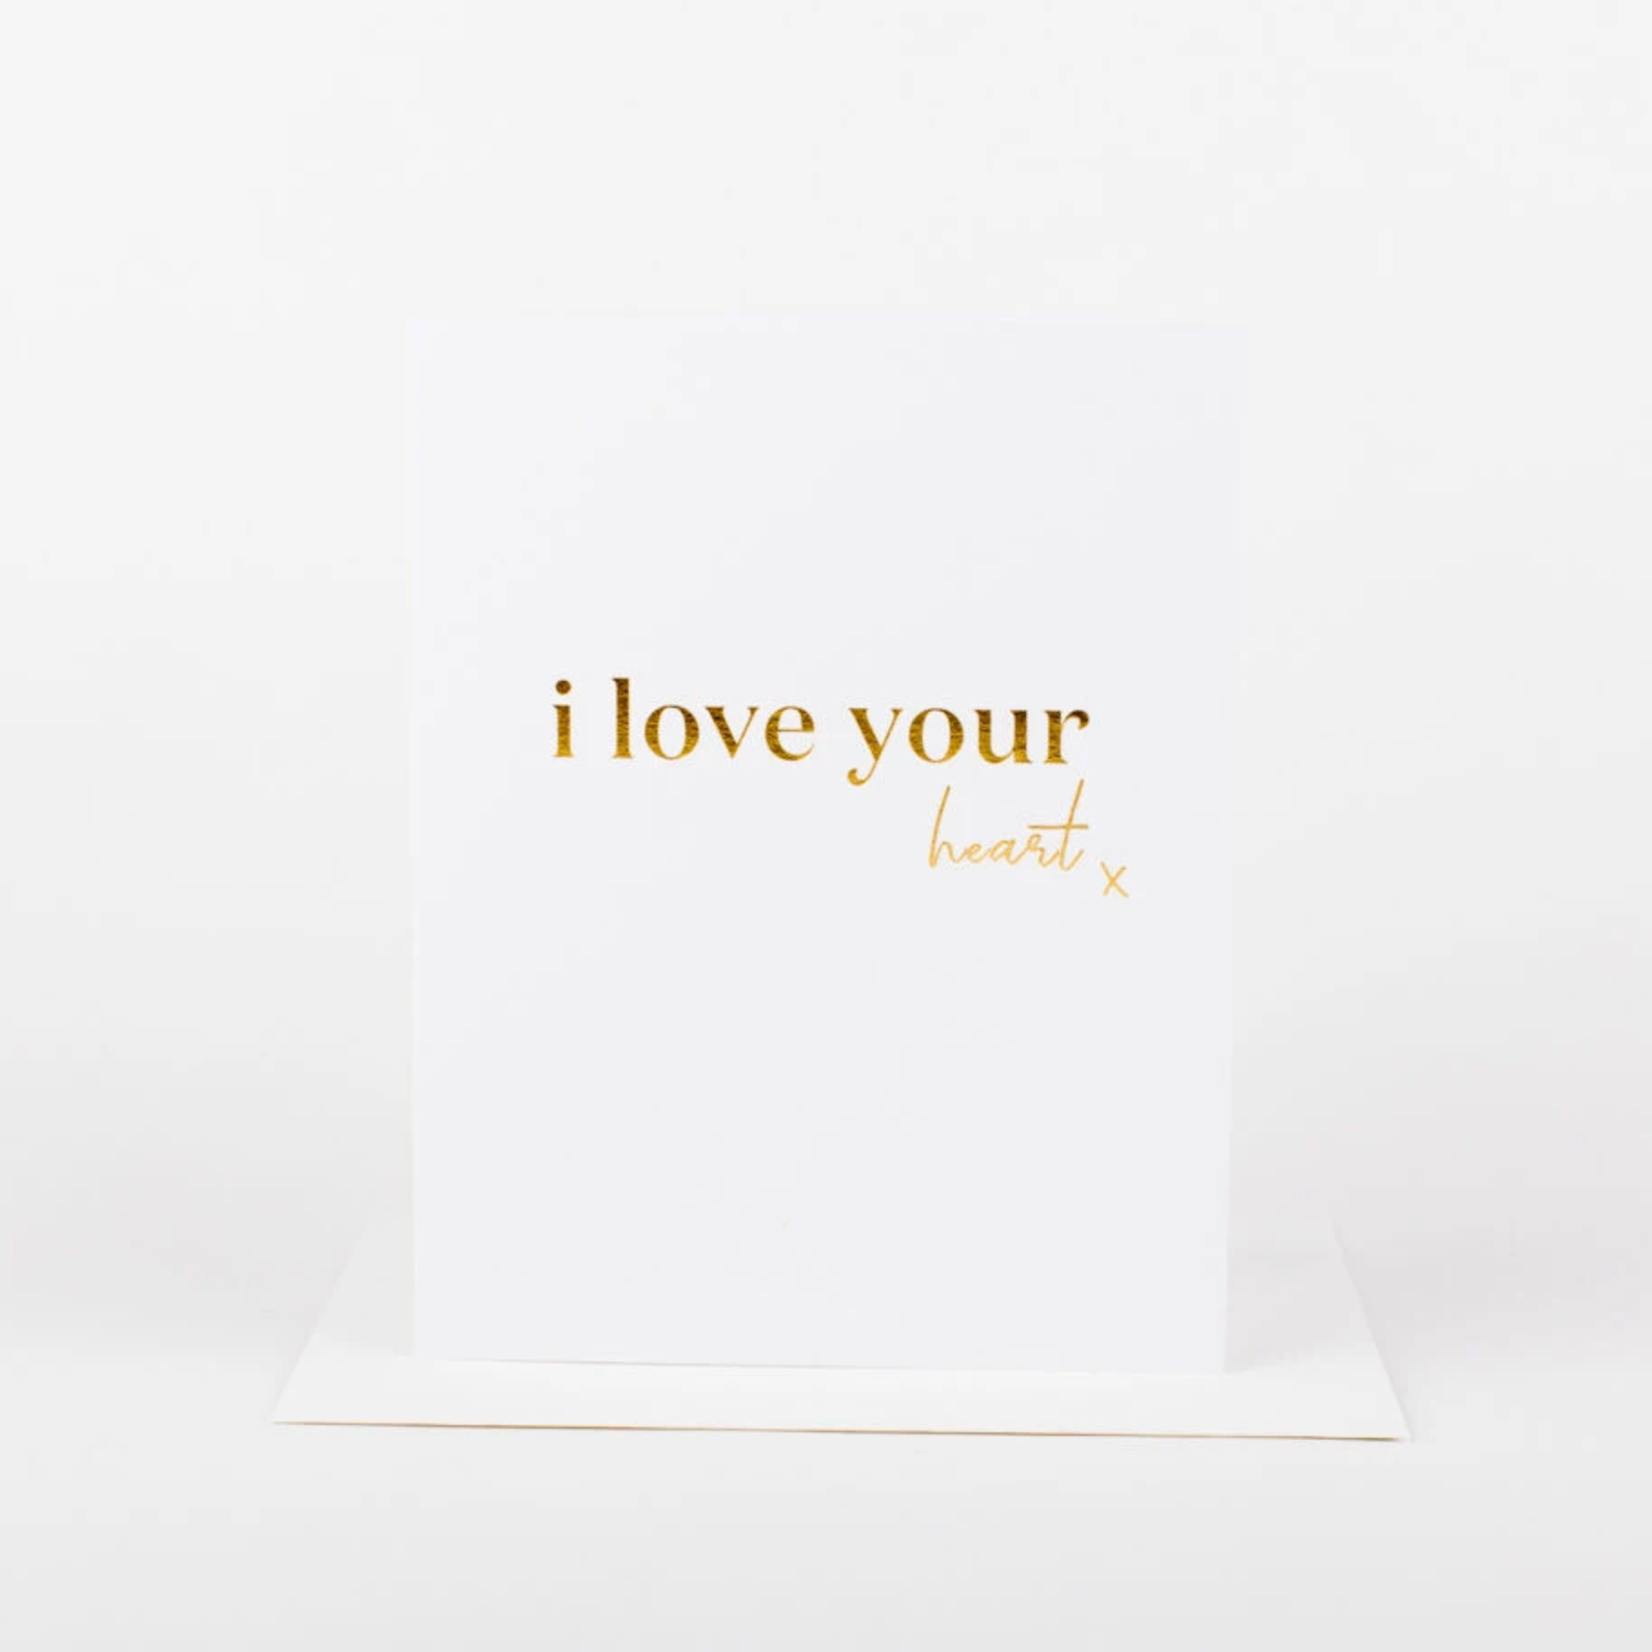 Wrinkle and Crease i love your heart x card